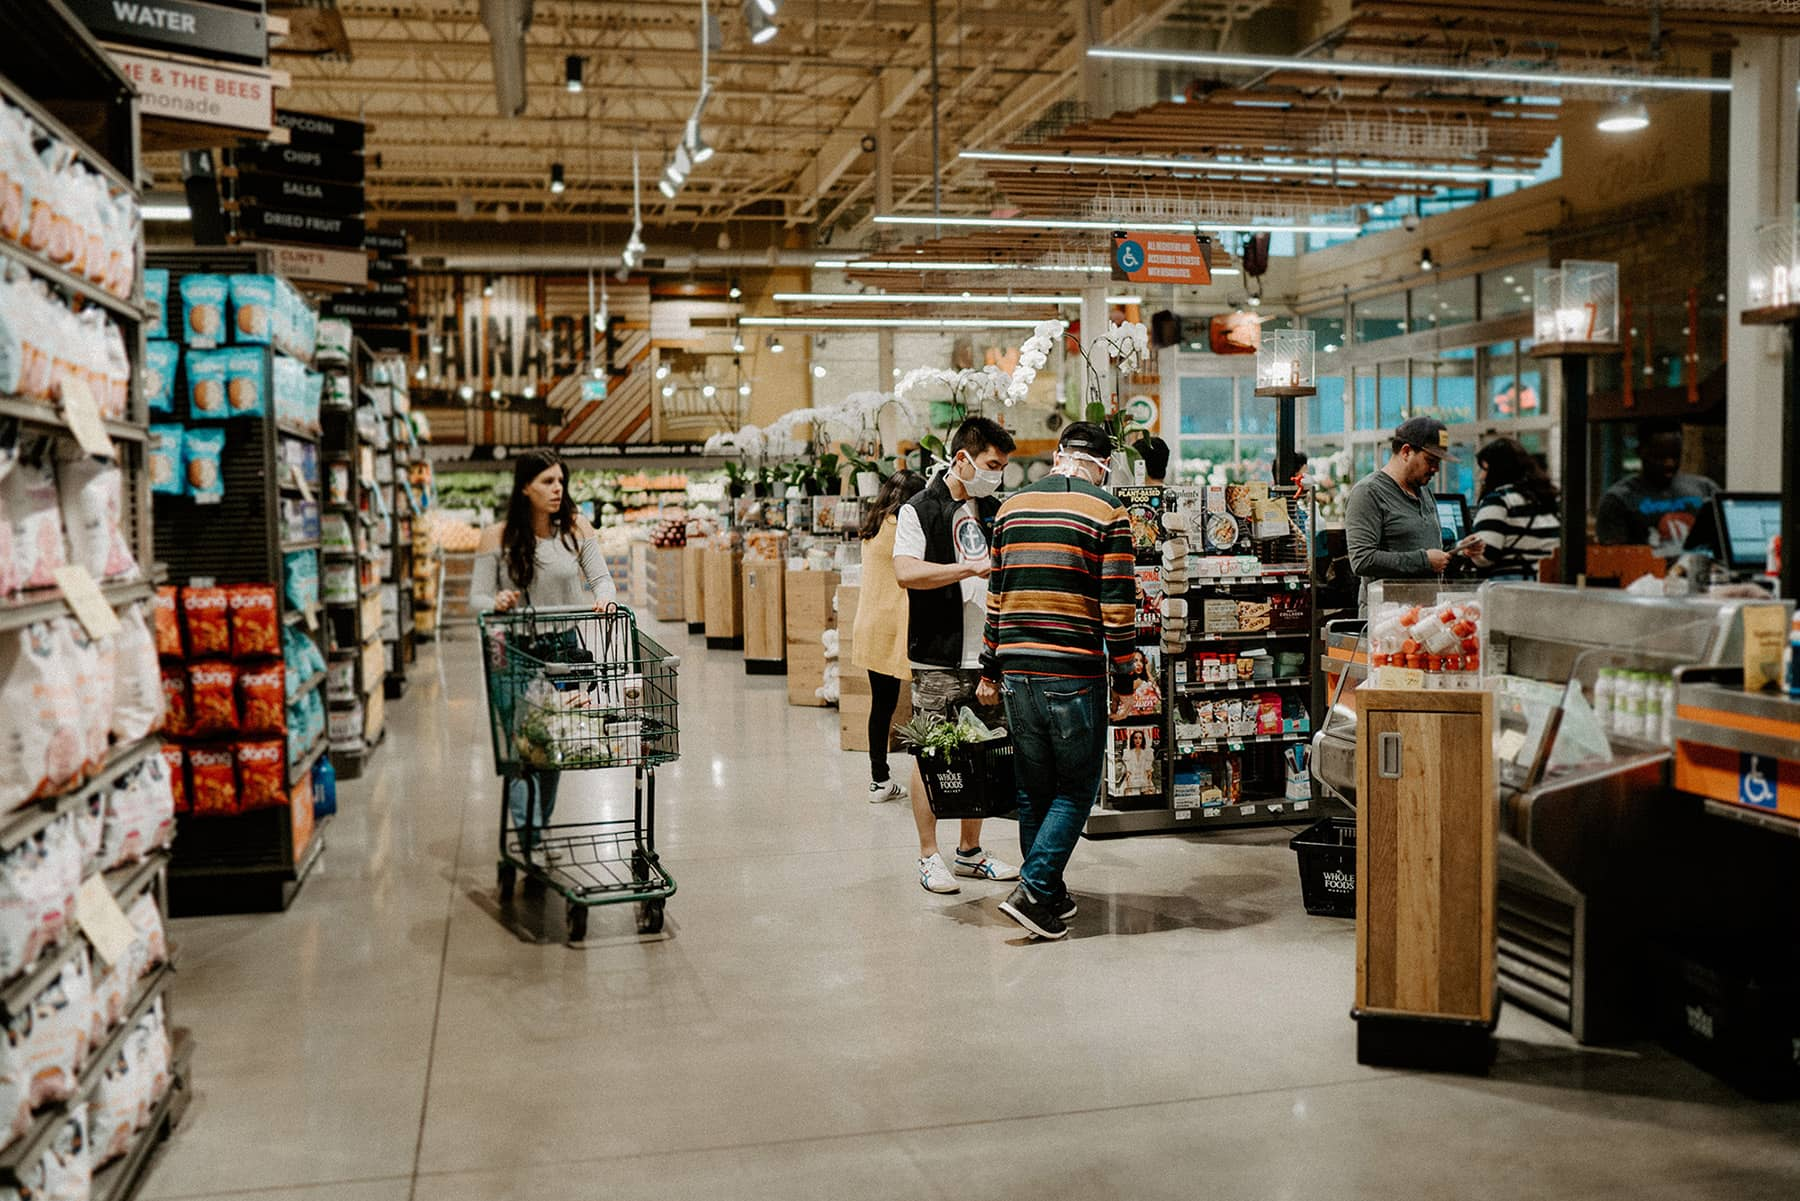 Whole Foods Market, Domain Drive, Austin, TX, USA. Picture credit: Brittani Burns.